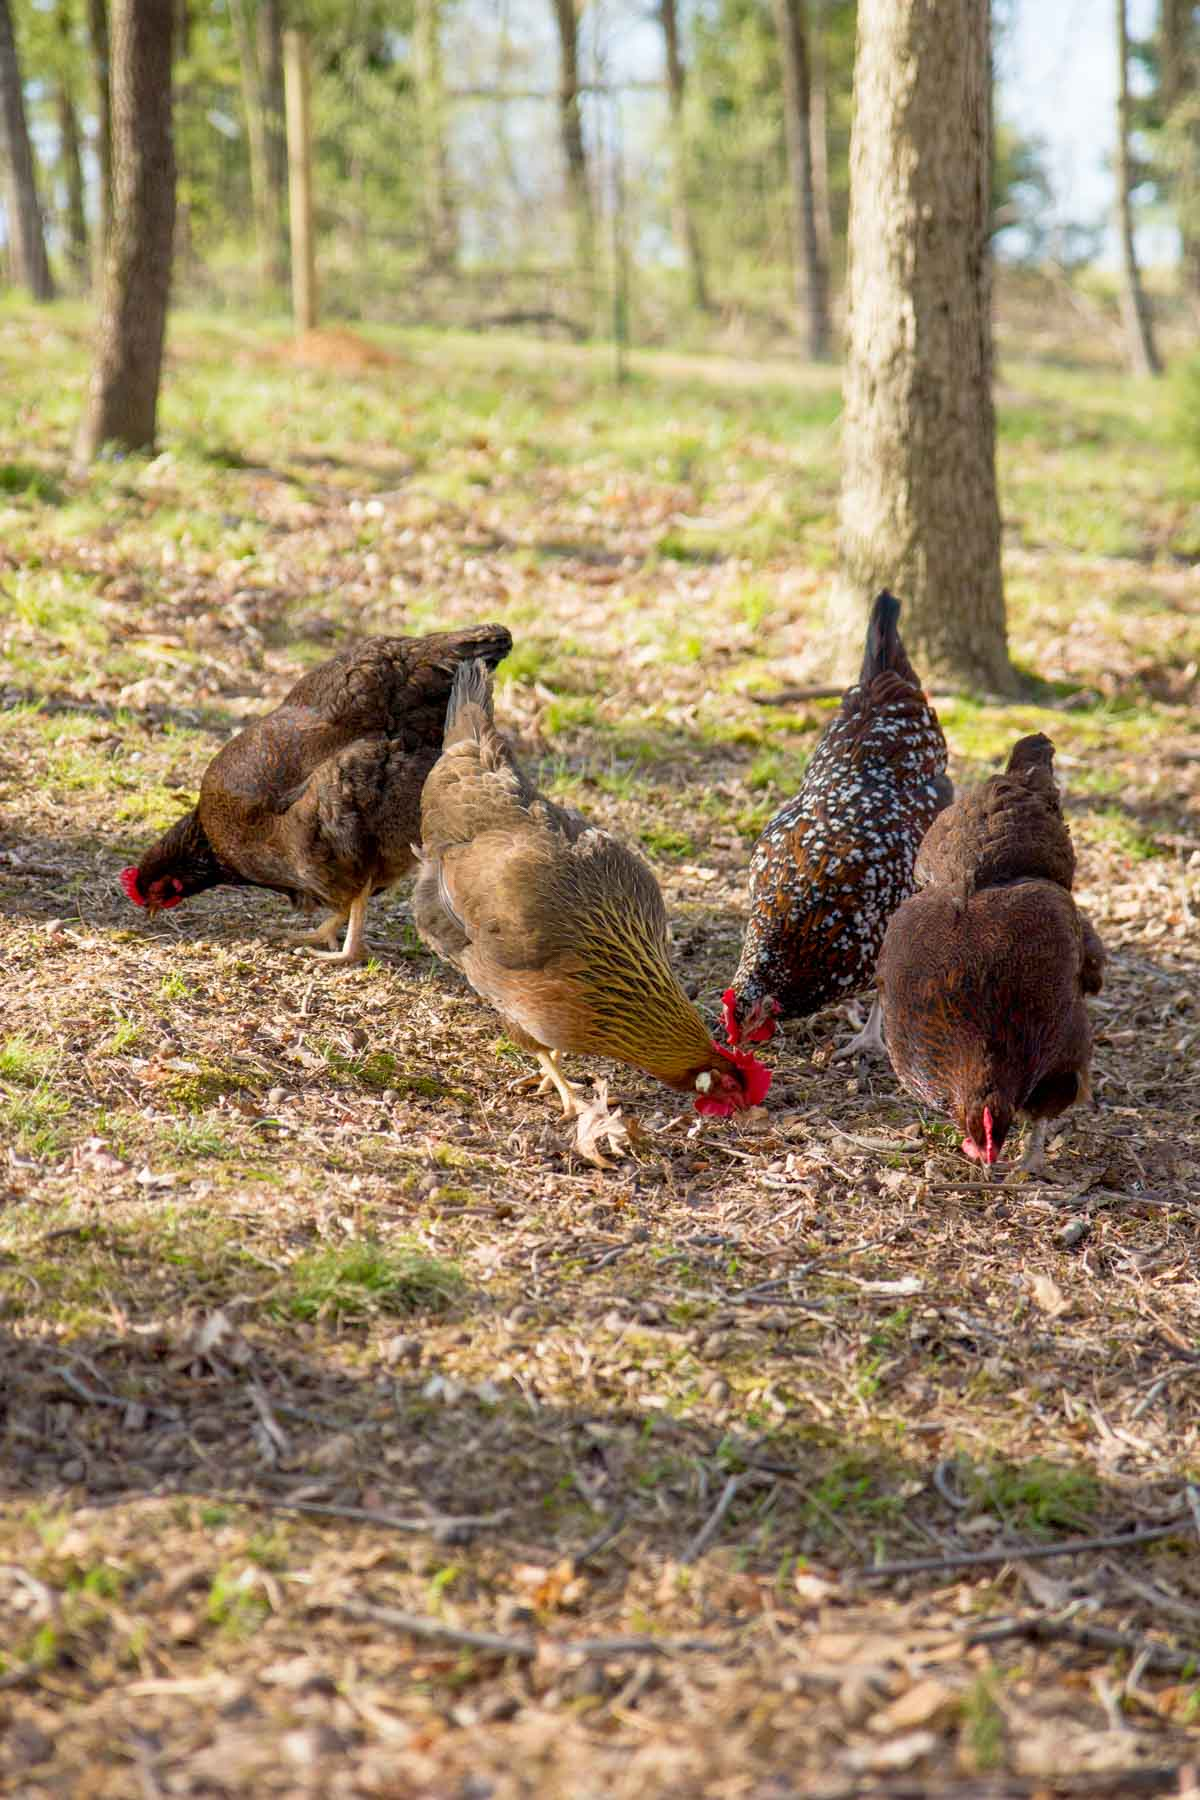 Four chickens pecking outdoors, helping to keep ticks away.